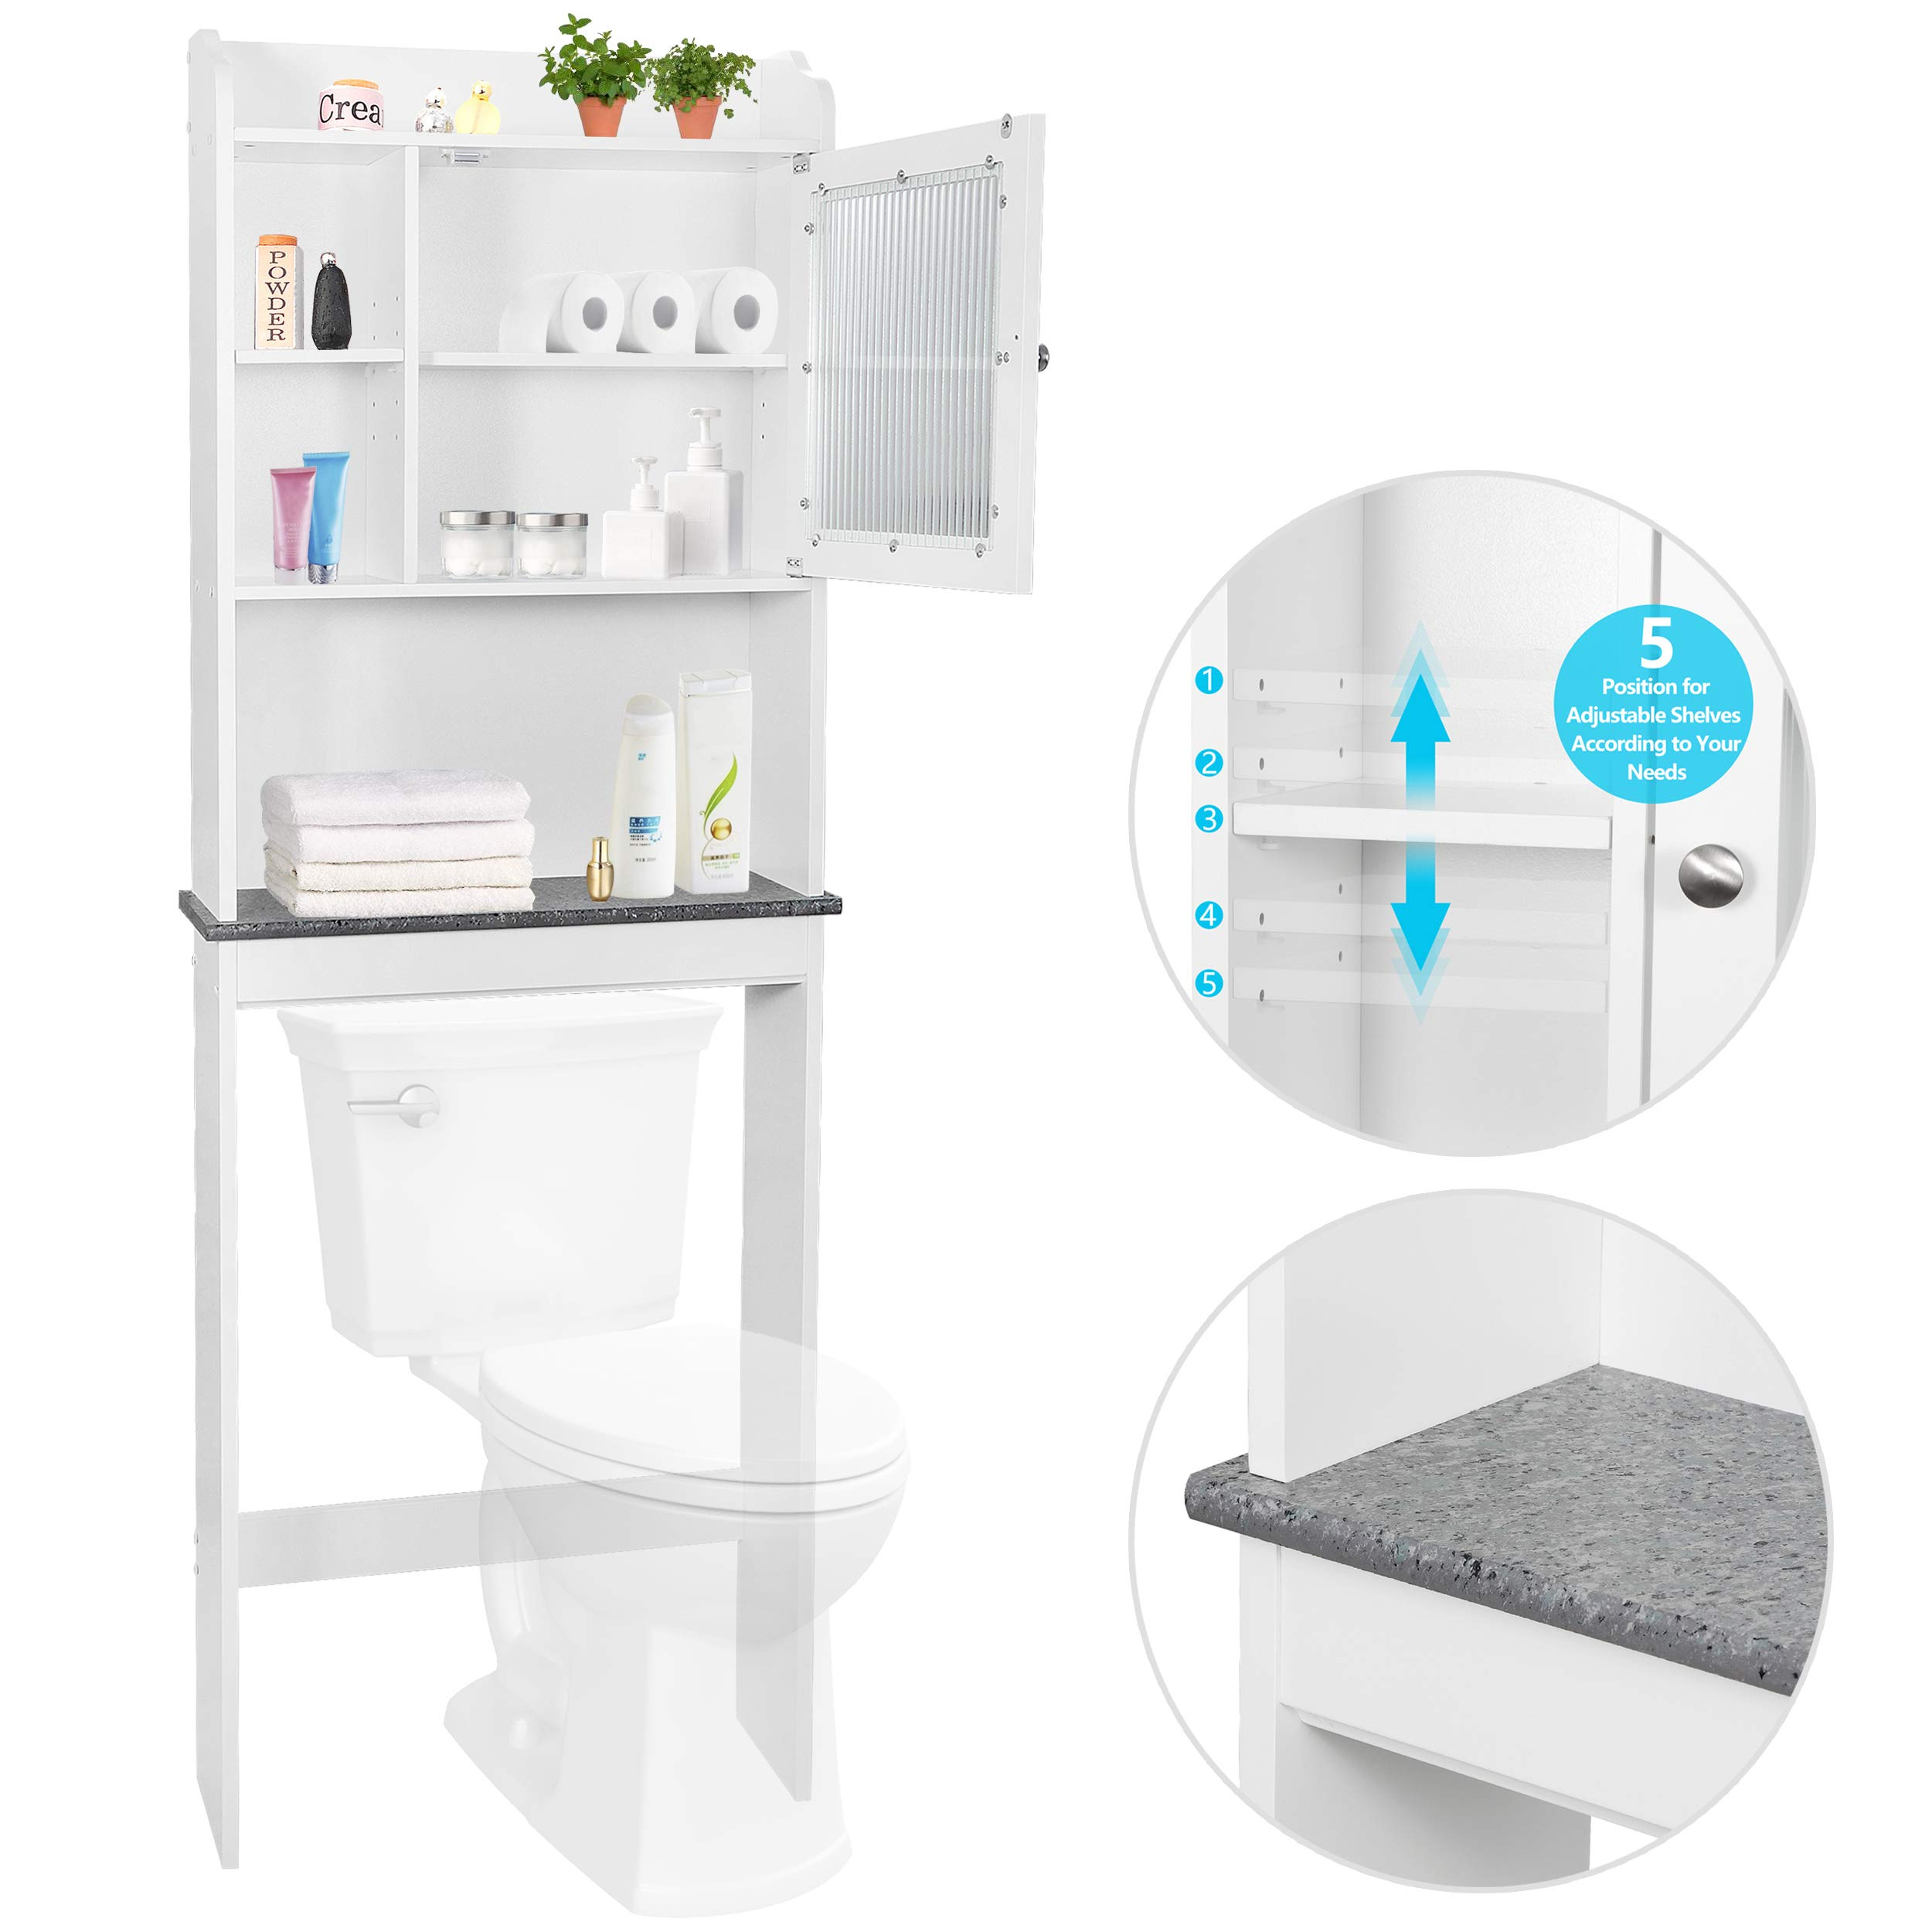 SUPER DEAL New Version Over-The-Toilet Bathroom Storage Cabinet Freestanding Wooden Bathroom Organizer w/Adjustable Shelves by SUPER DEAL